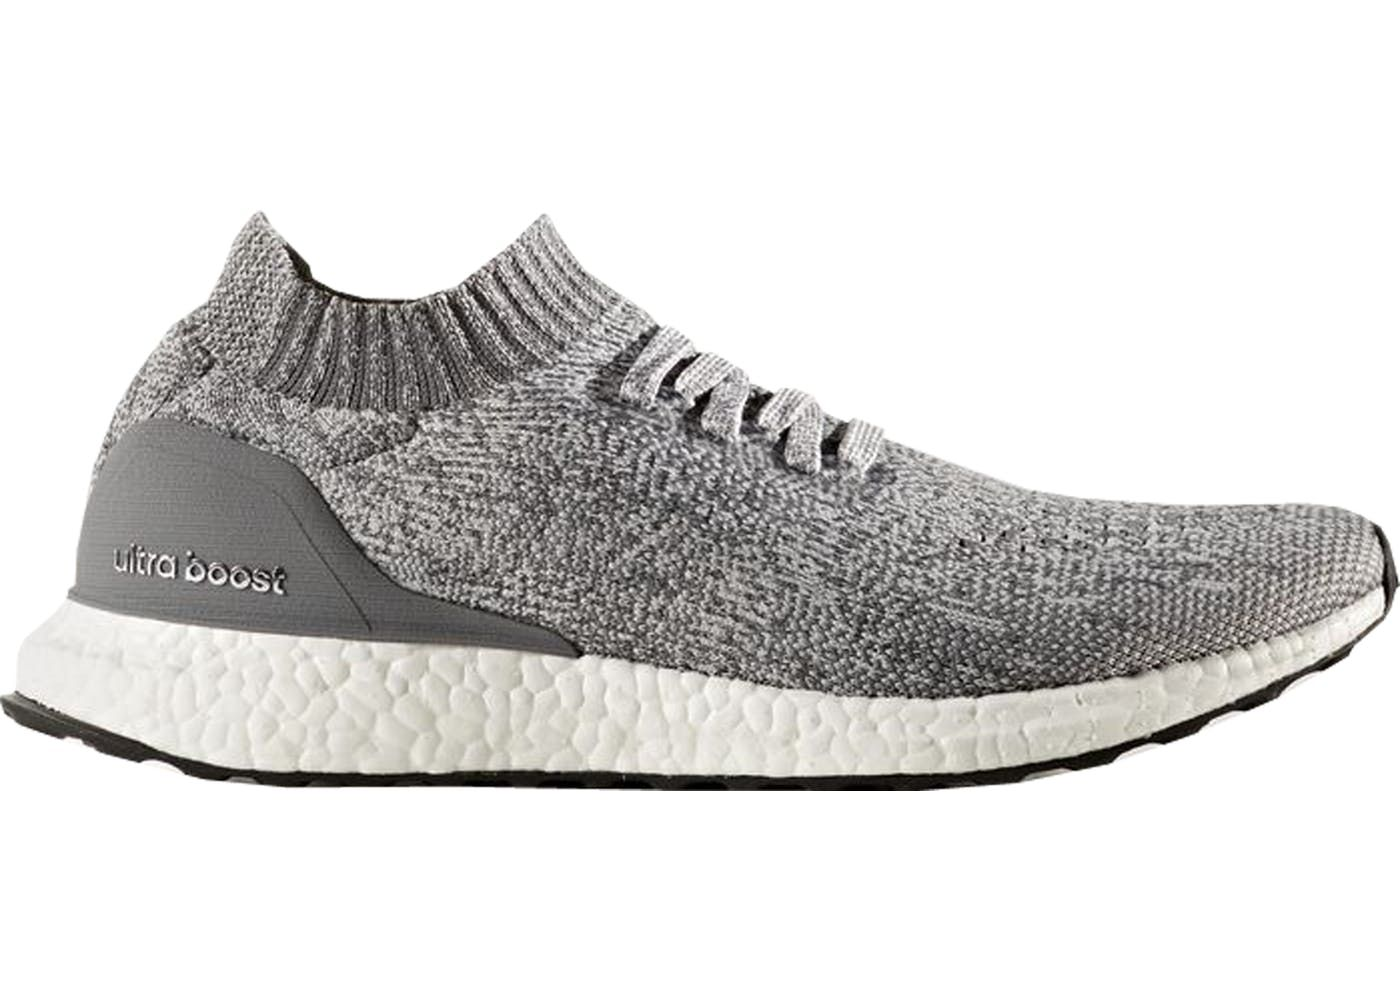 ba0e2c23 Check out the adidas Ultra Boost Uncaged Light Grey available on StockX